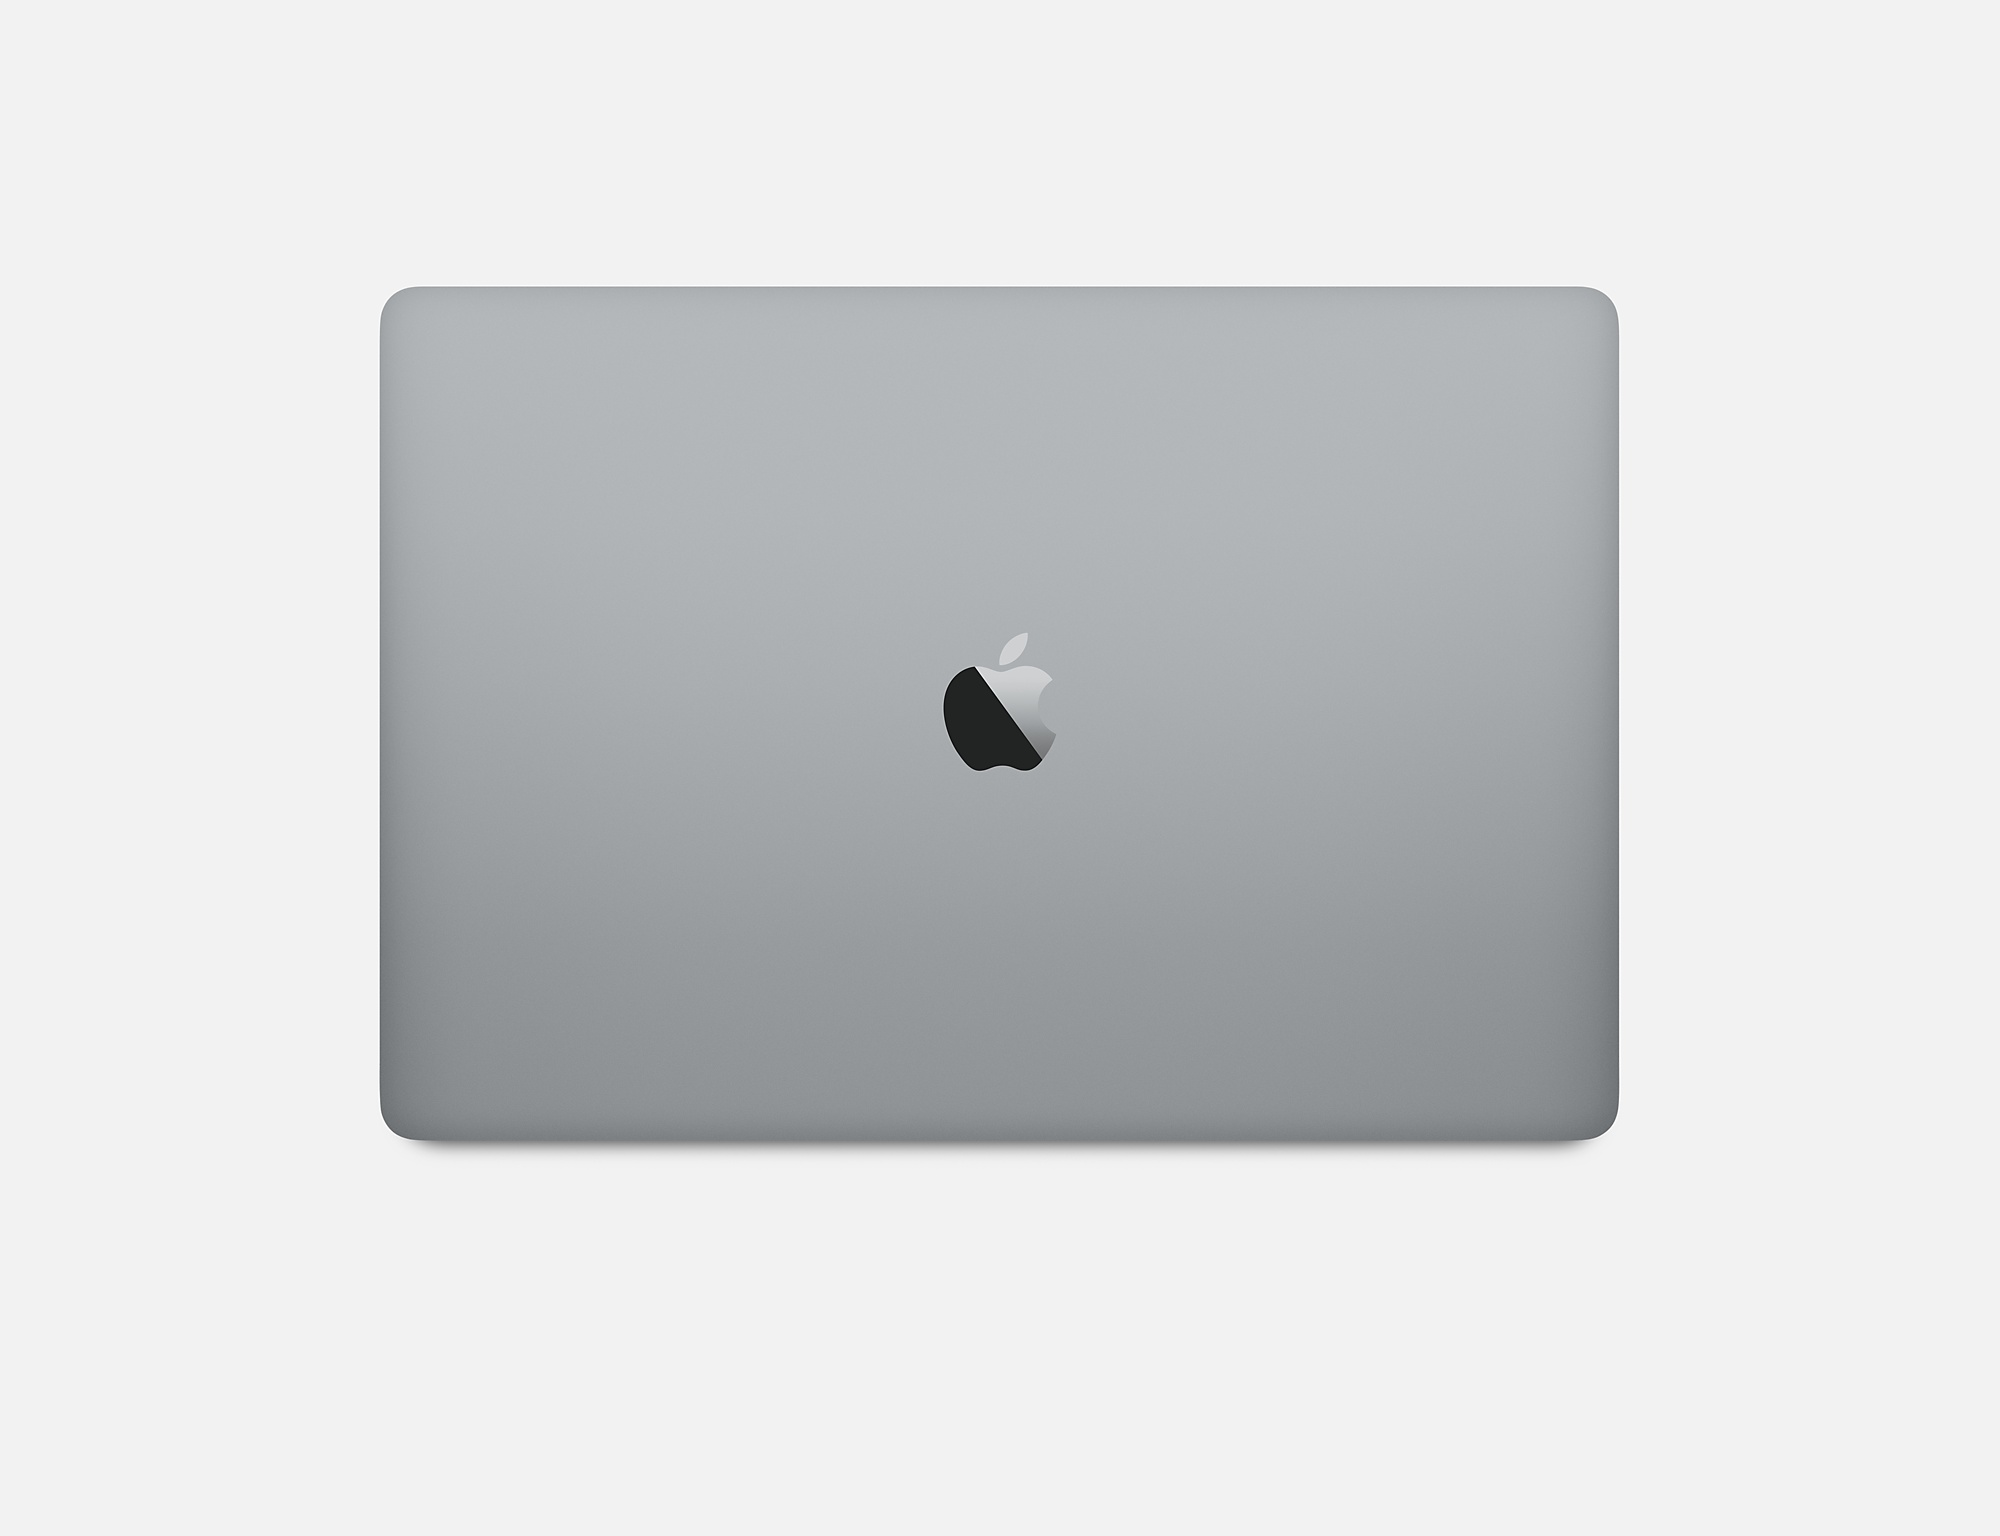 15 macbook pro mlh32 space gray 2016 3 applecover. Black Bedroom Furniture Sets. Home Design Ideas